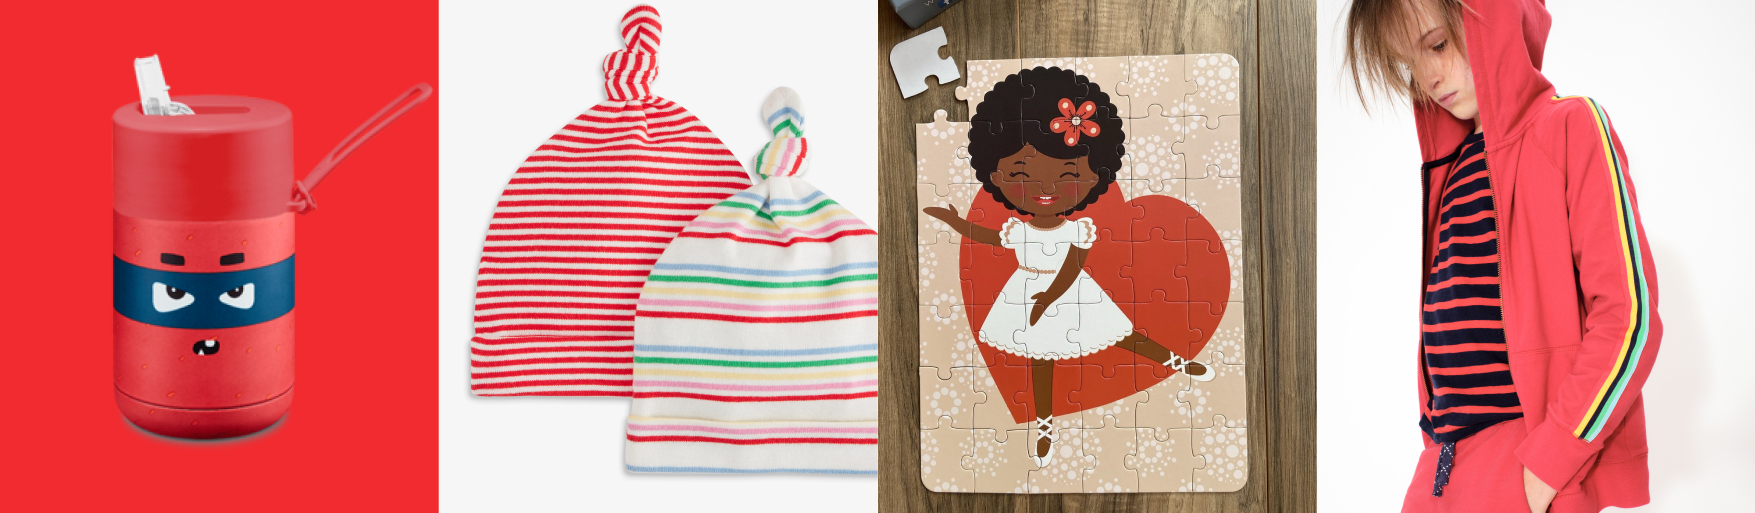 row of red portable cup, baby hats, ballerina puzzle, and child wearing red hoodie with a striped shirt